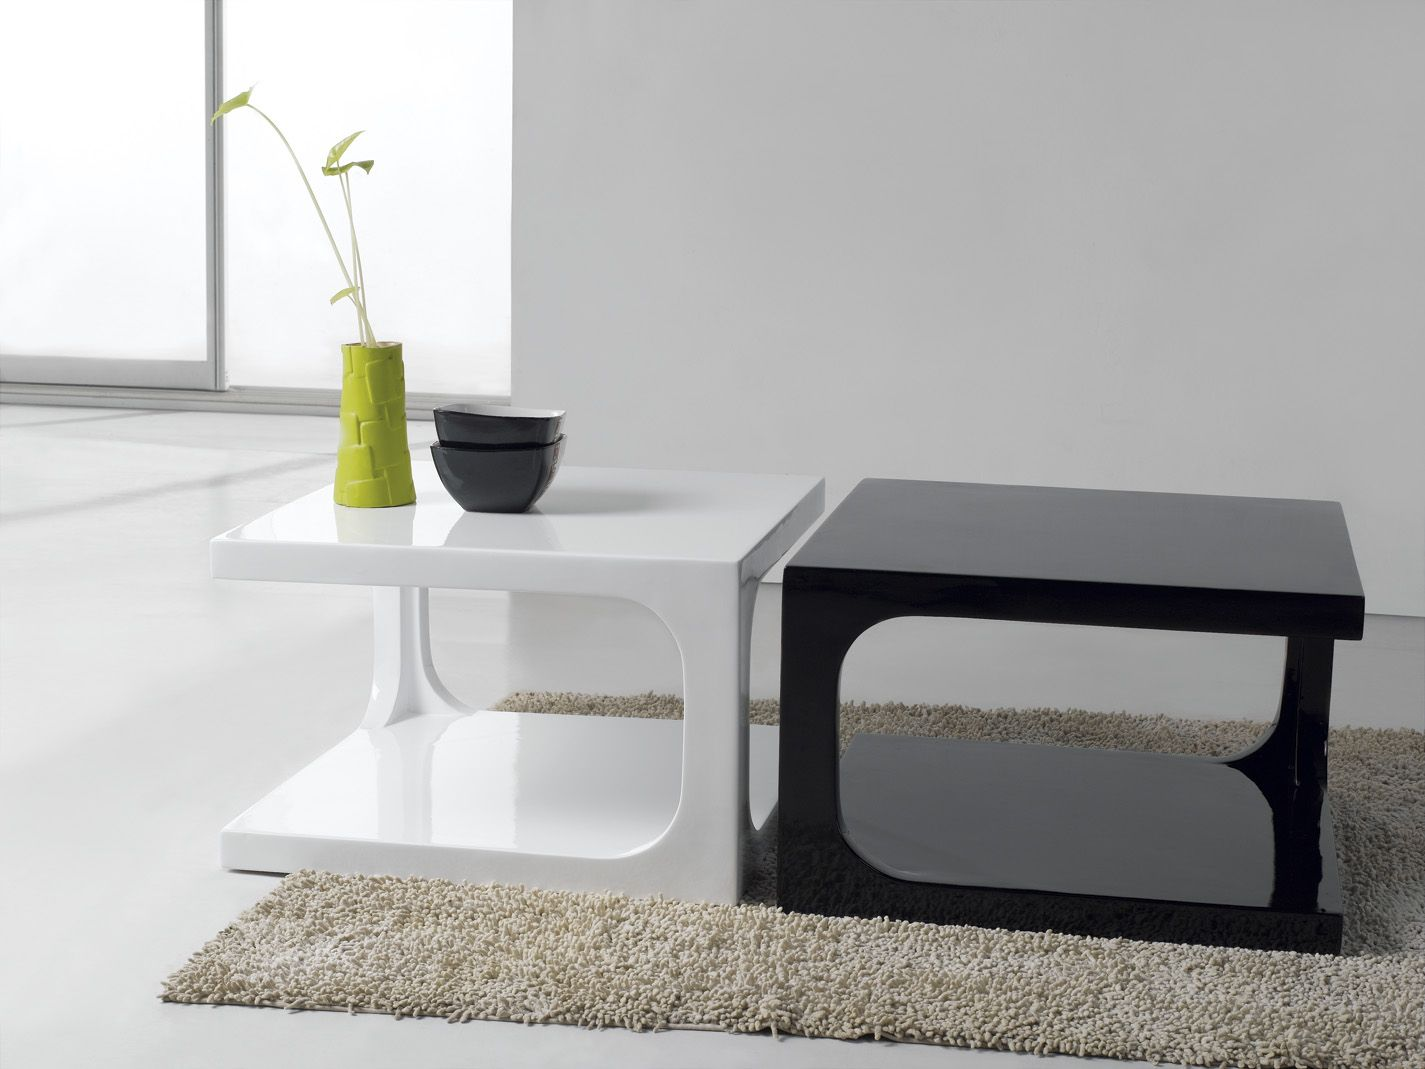 Furniture Modern Black White Wooden Coffee Table With Table Top ...